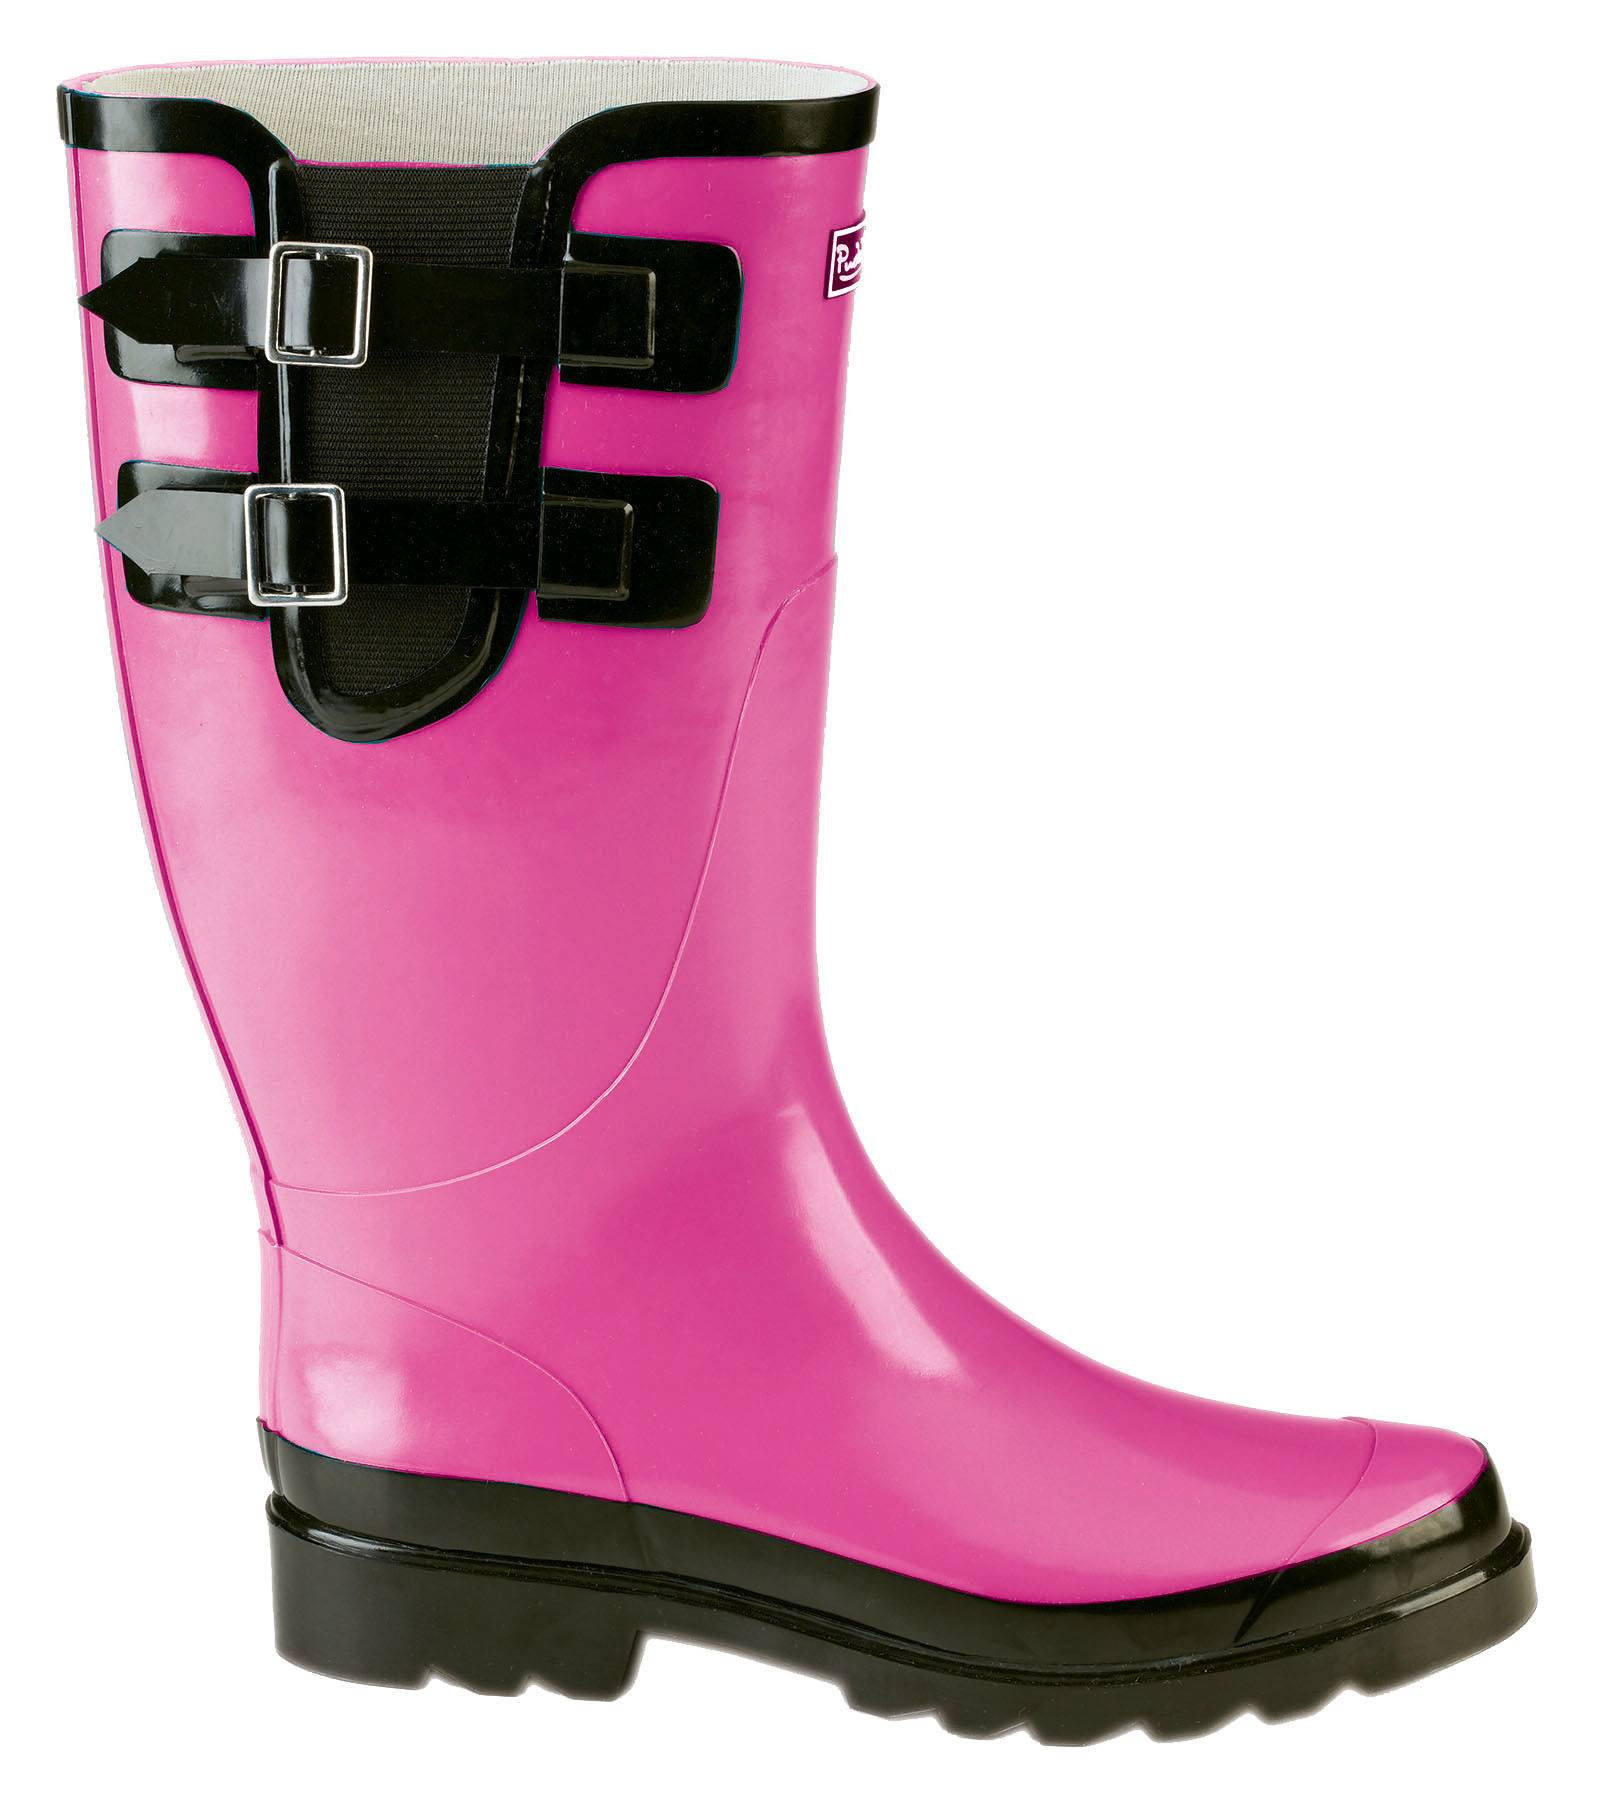 Muck Boots Classic Double Strap Puddleton - Ladies - Pink